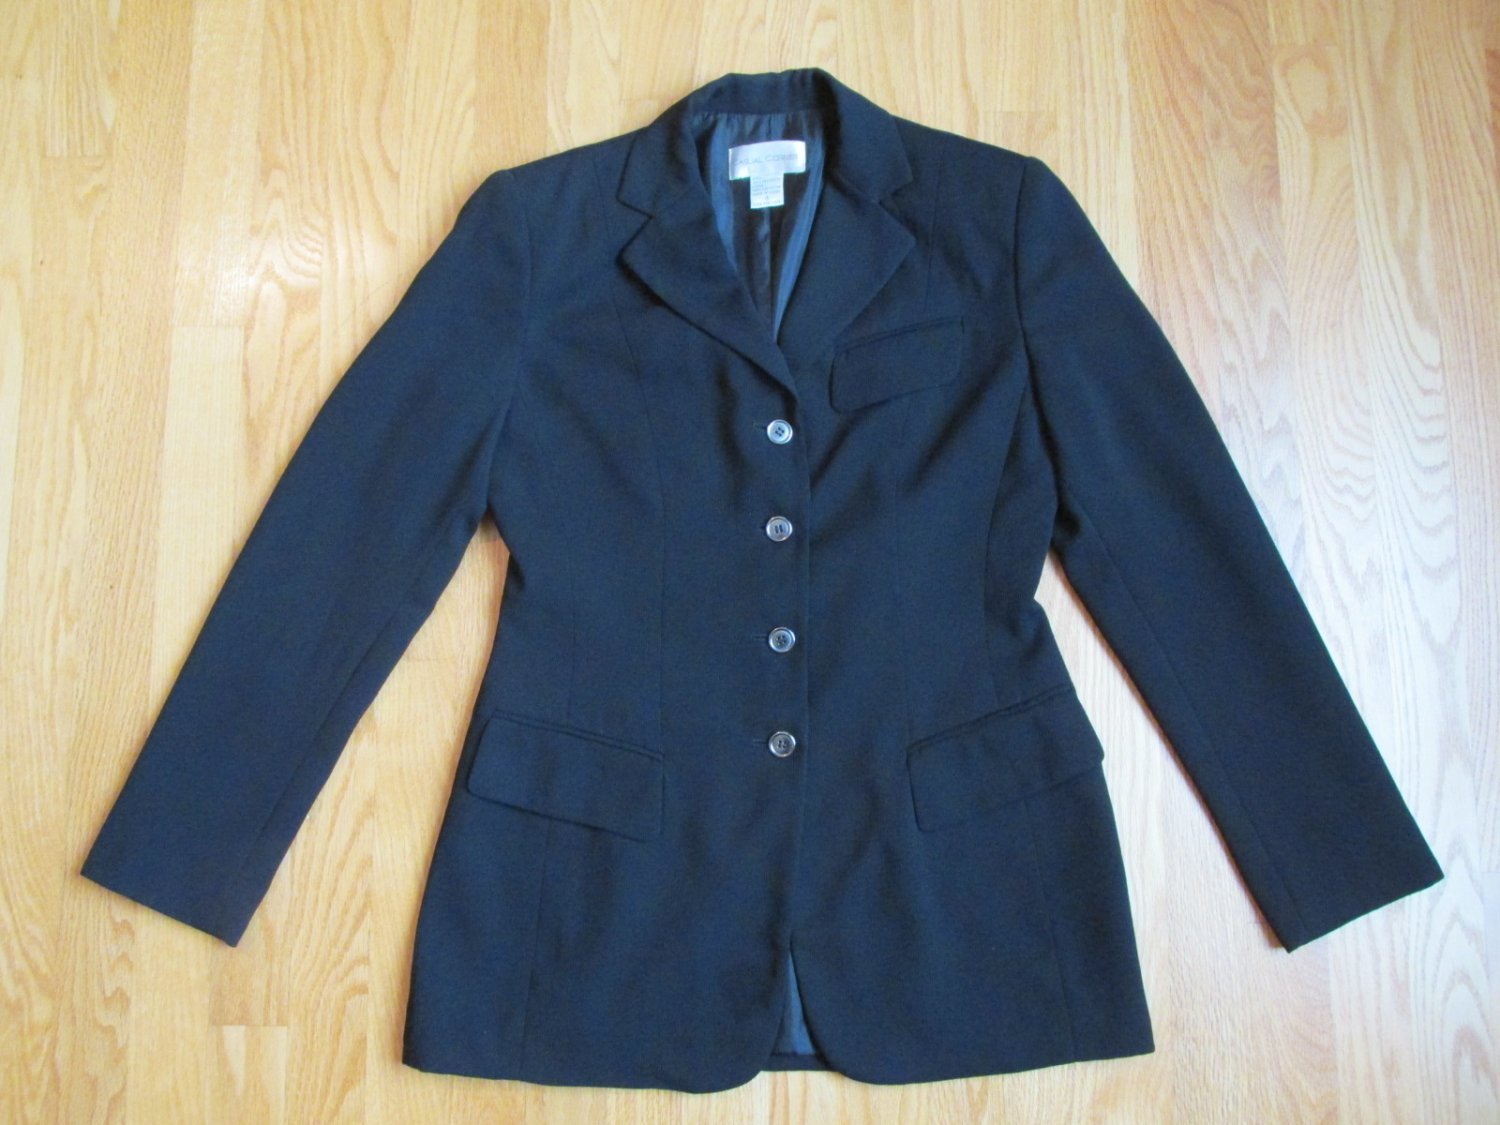 CASUAL CORNER WOMEN'S SIZE 4 SUIT JACKET BLACK OFFICE CAREER TAILORED BLAZER STYLISH & SHARP